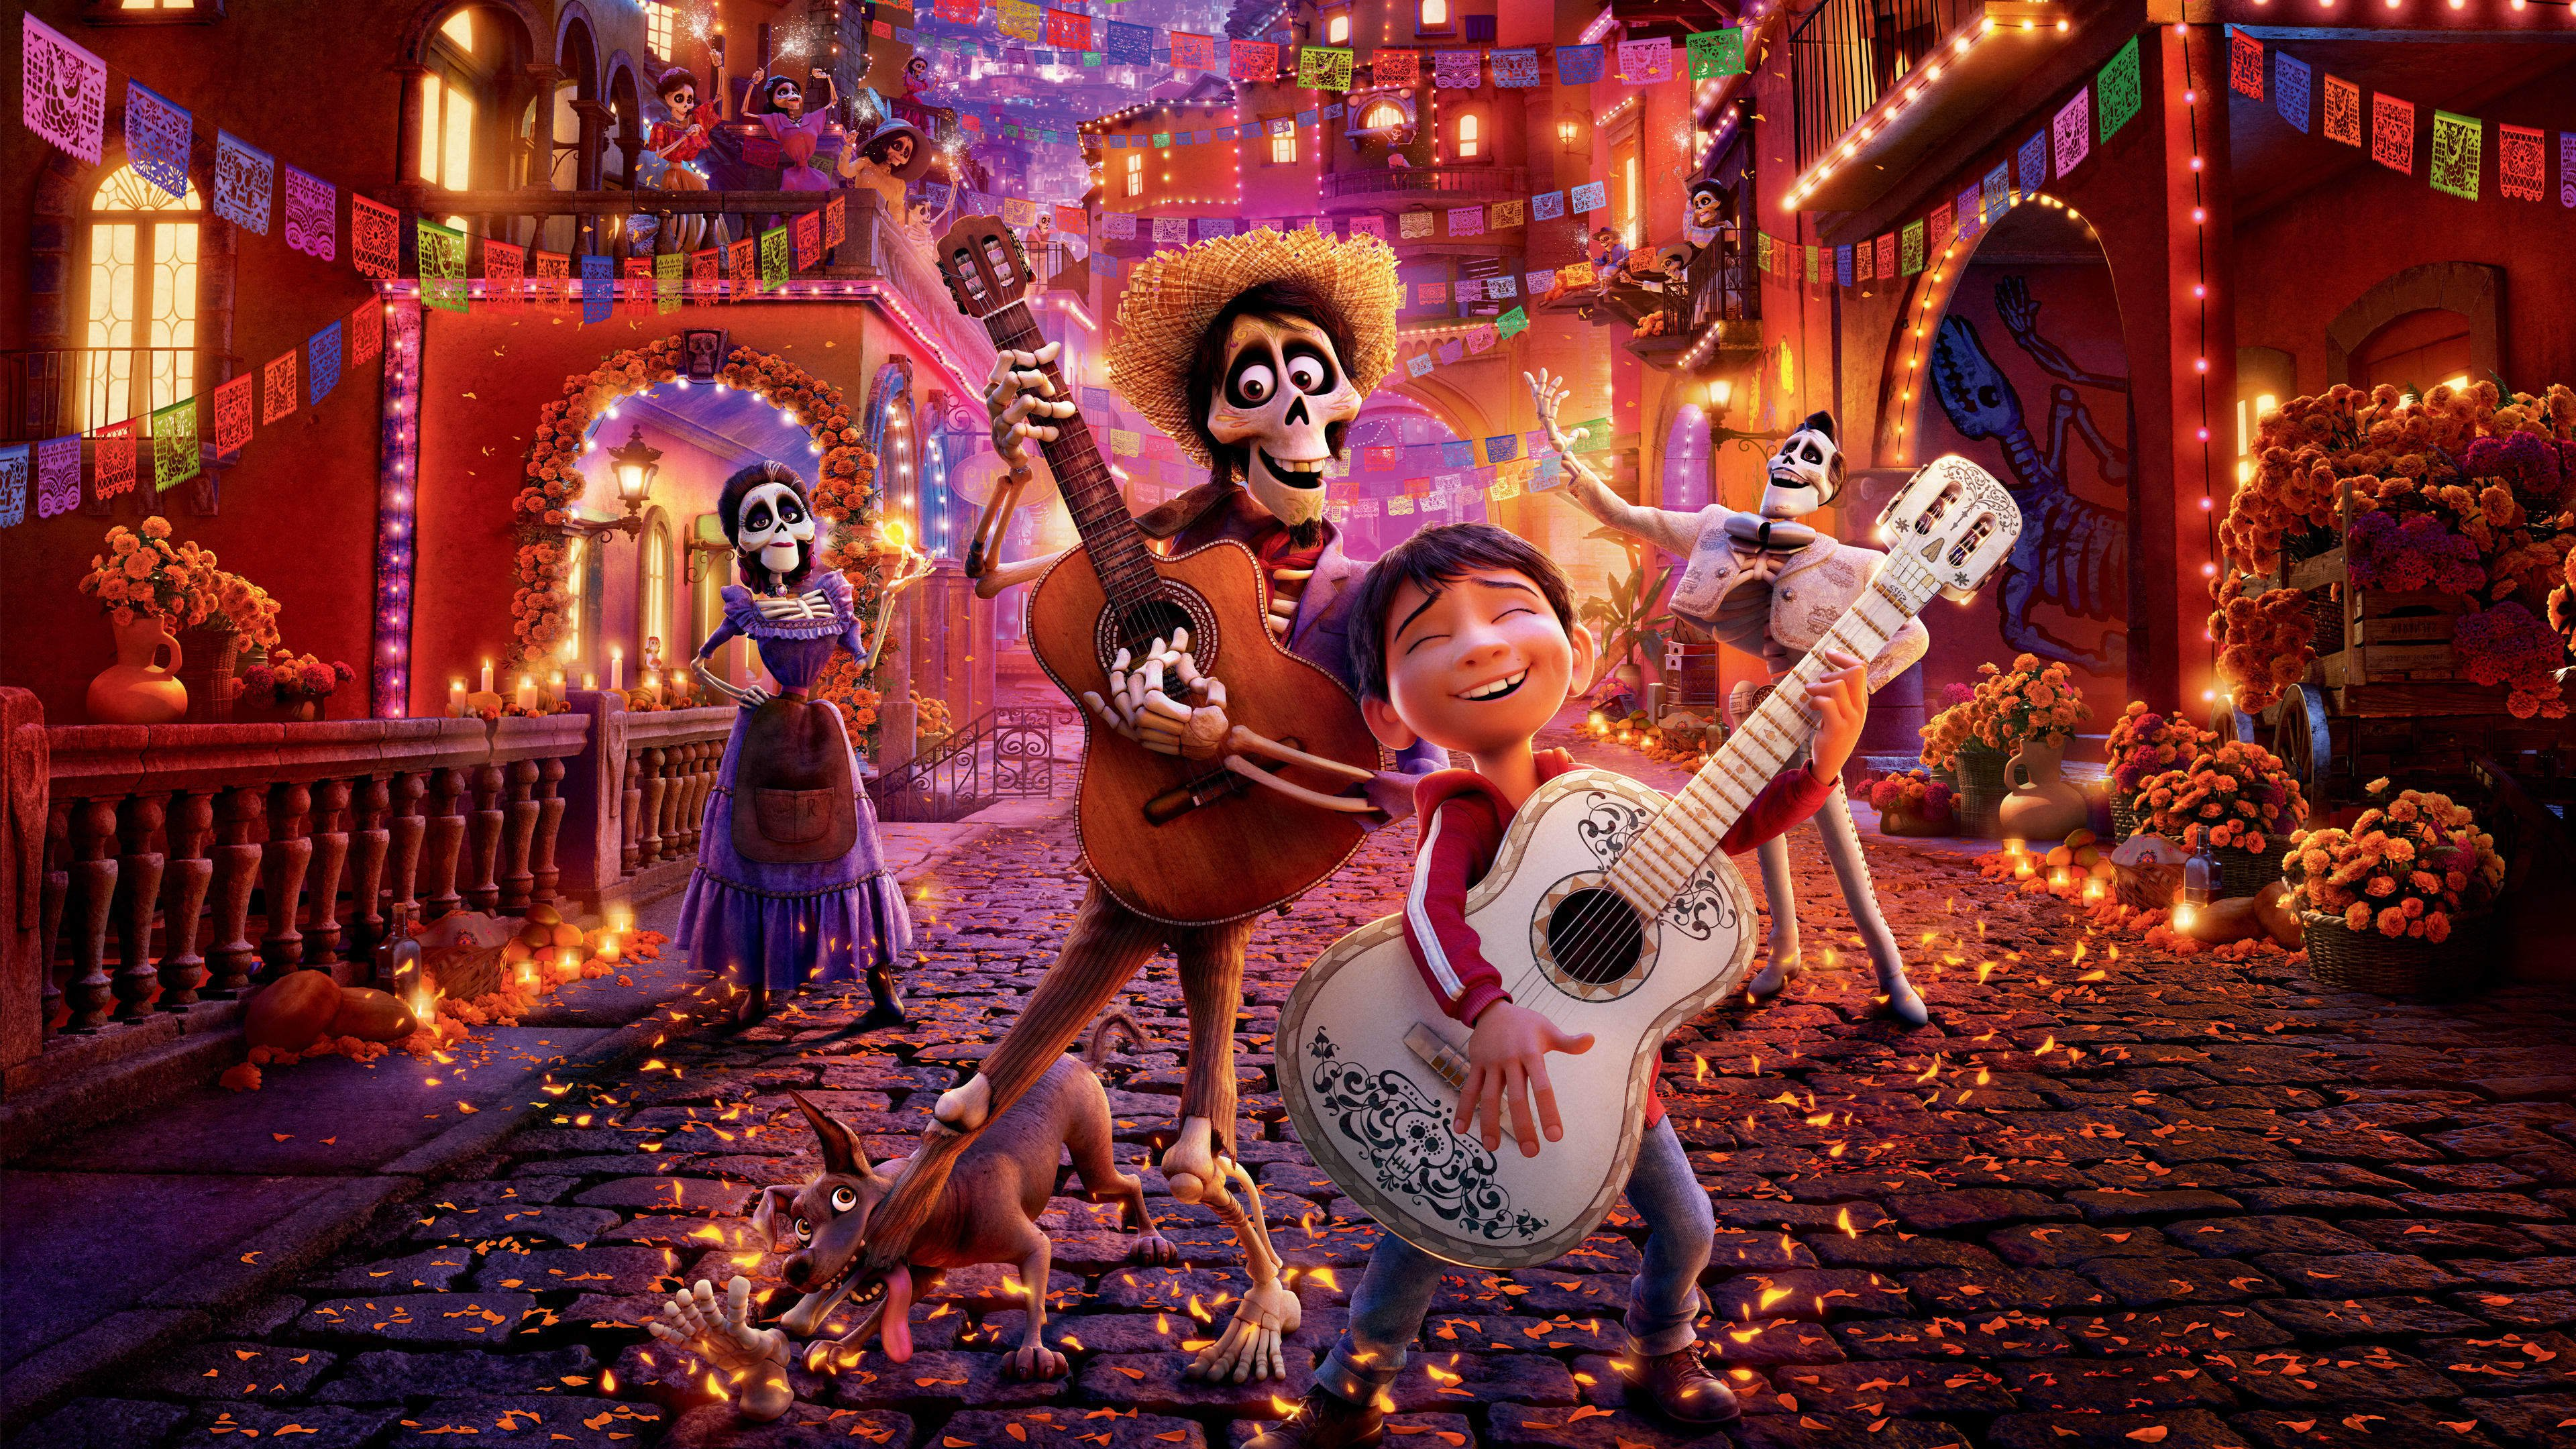 coco.2017.bdrip.x264-sparks.mkv.mp4